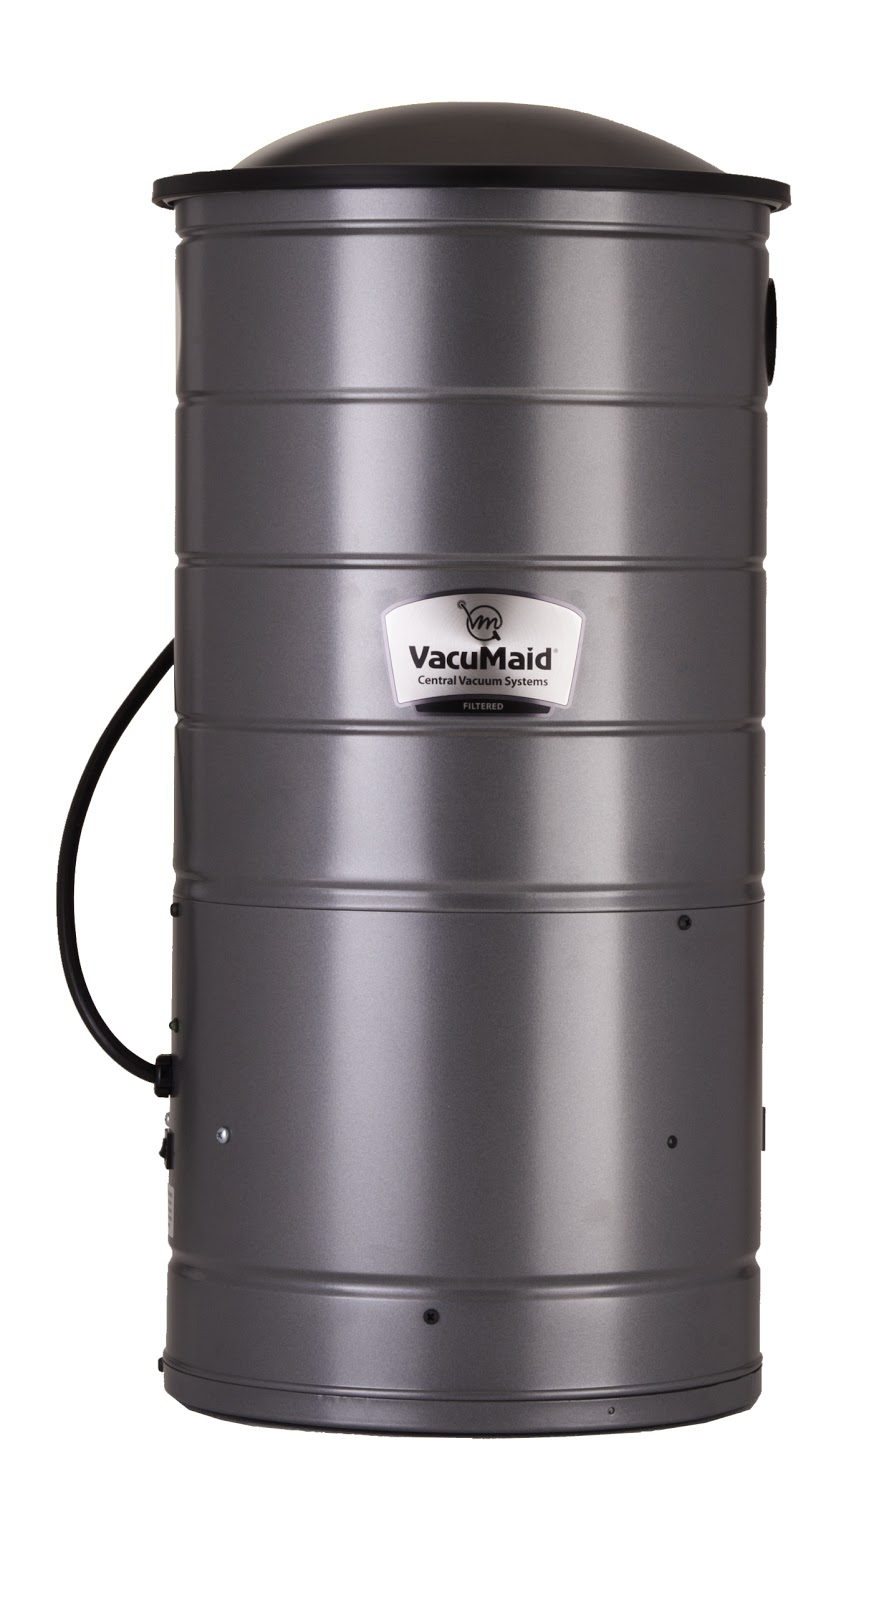 VacuMaid SR52 Central Vacuum Power Unit